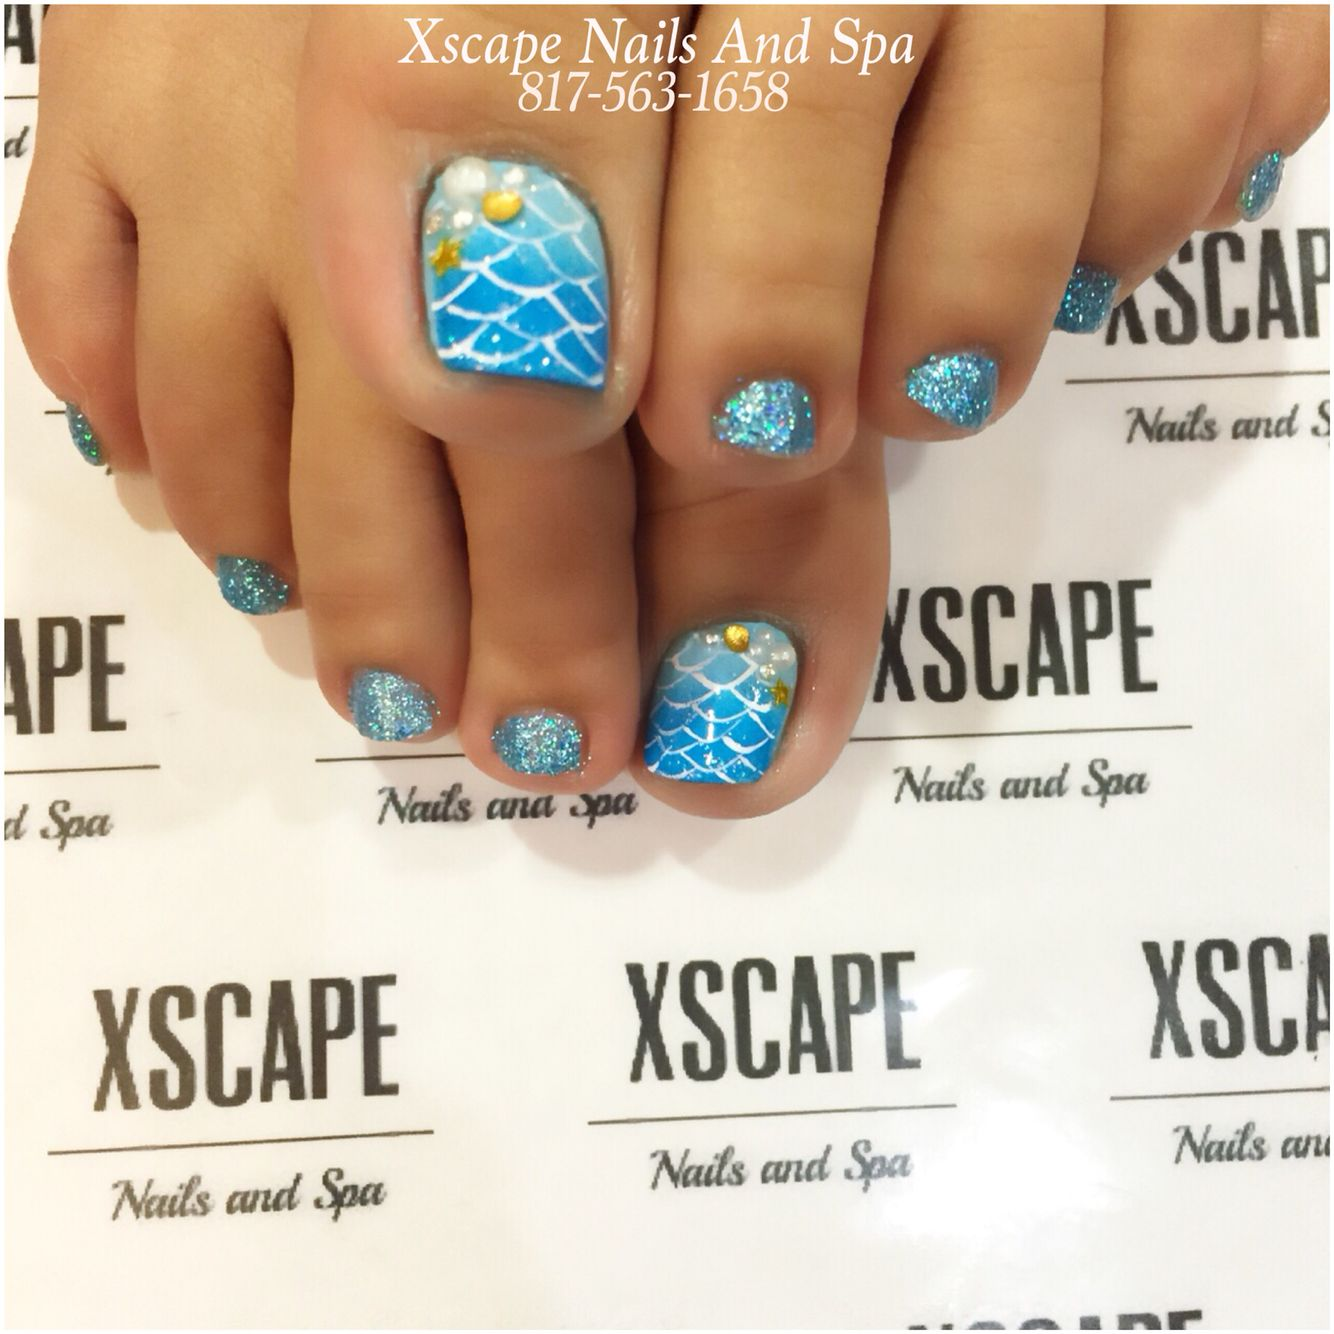 Mermaid nail designs | Beauty. | Pinterest | Manicuras, Cumpleaños y ...